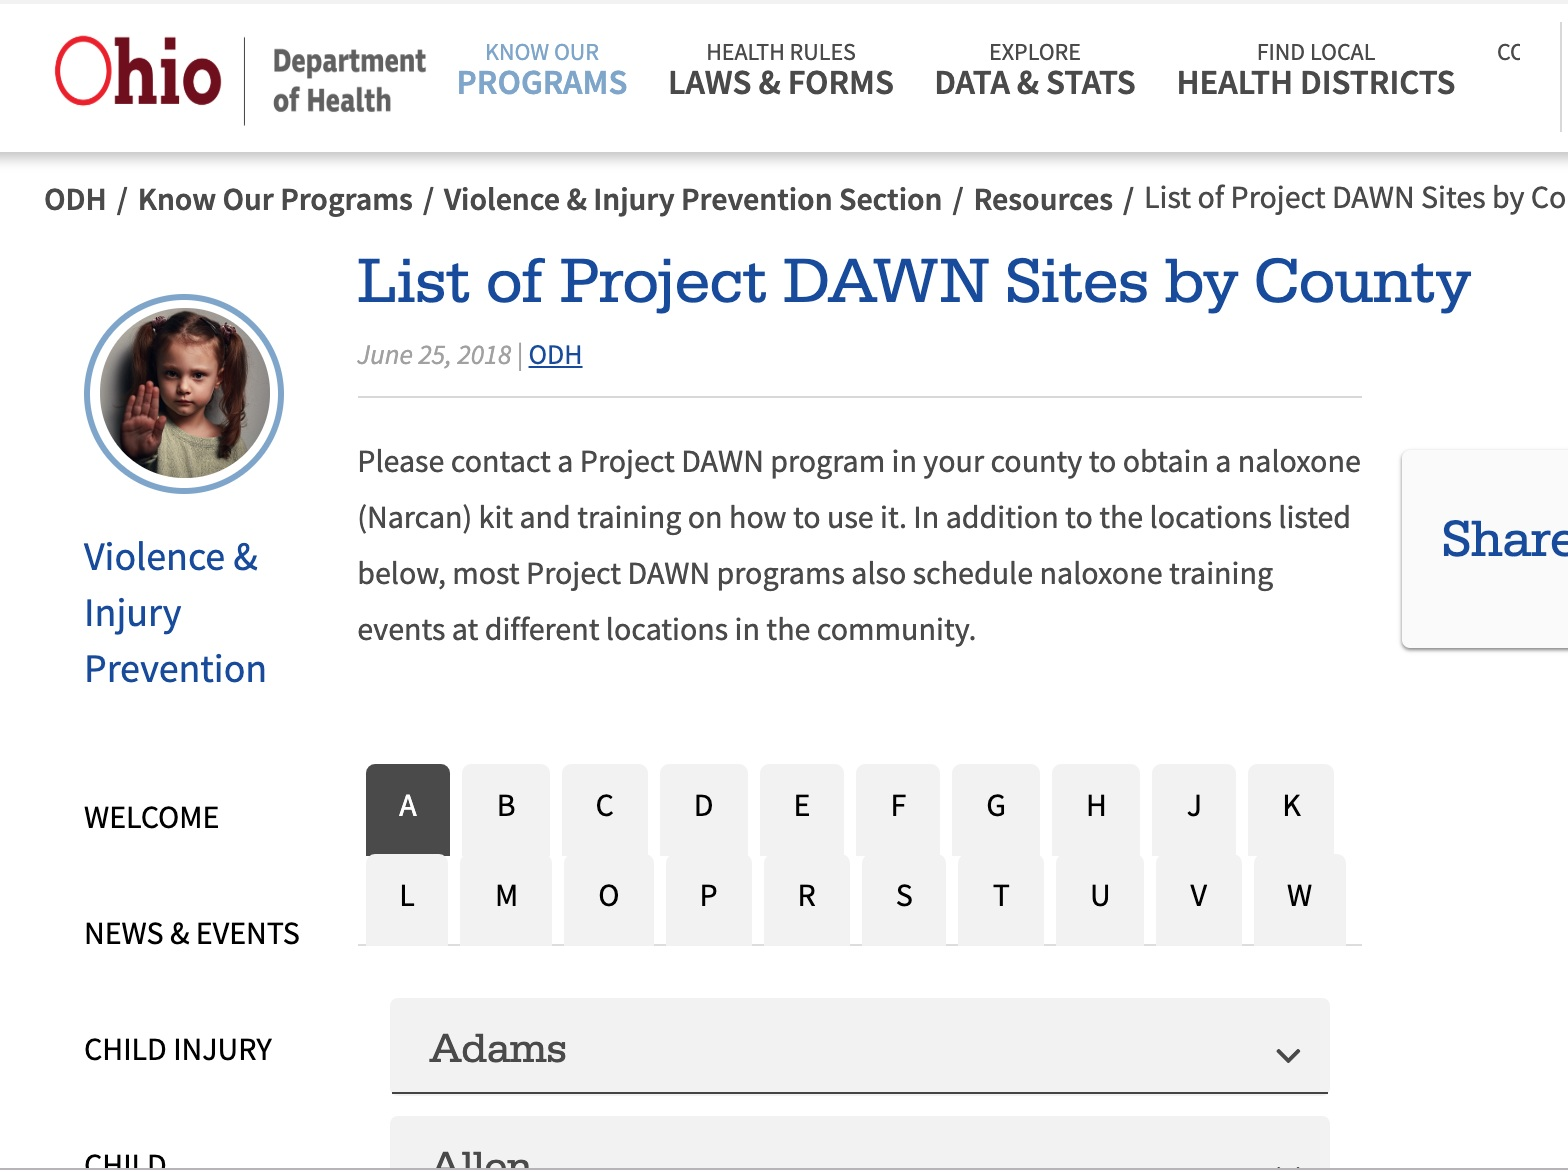 project dawn sites - Use this site to search Project DAWN sites by county. Project DAWN locations provide overdose response training and naloxone provision. Call ahead for more information.